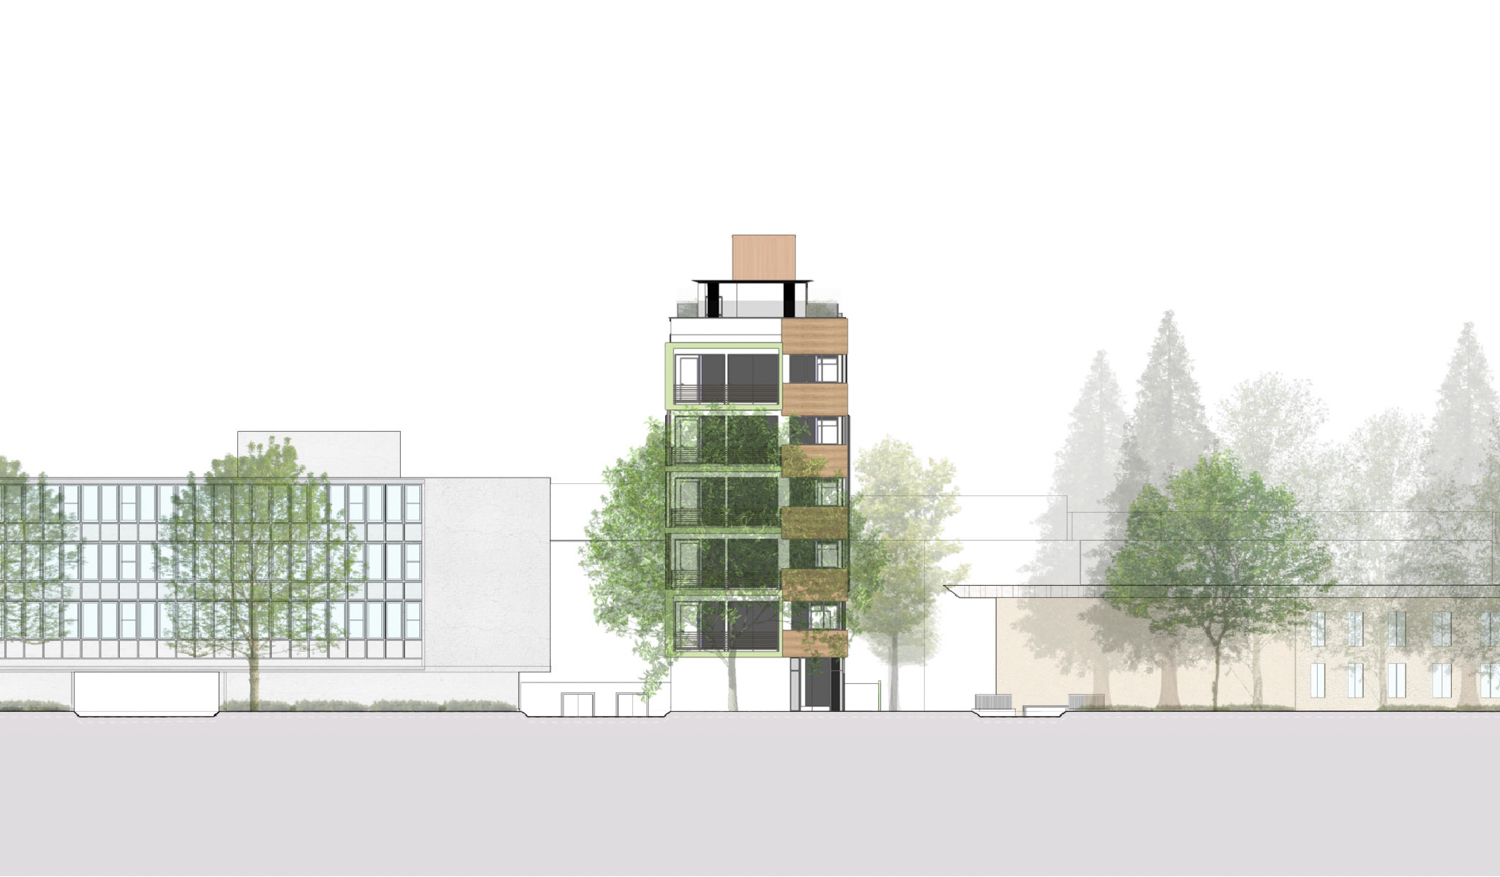 1412 Bellevue Avenue context elevation, rendering by MH Architects